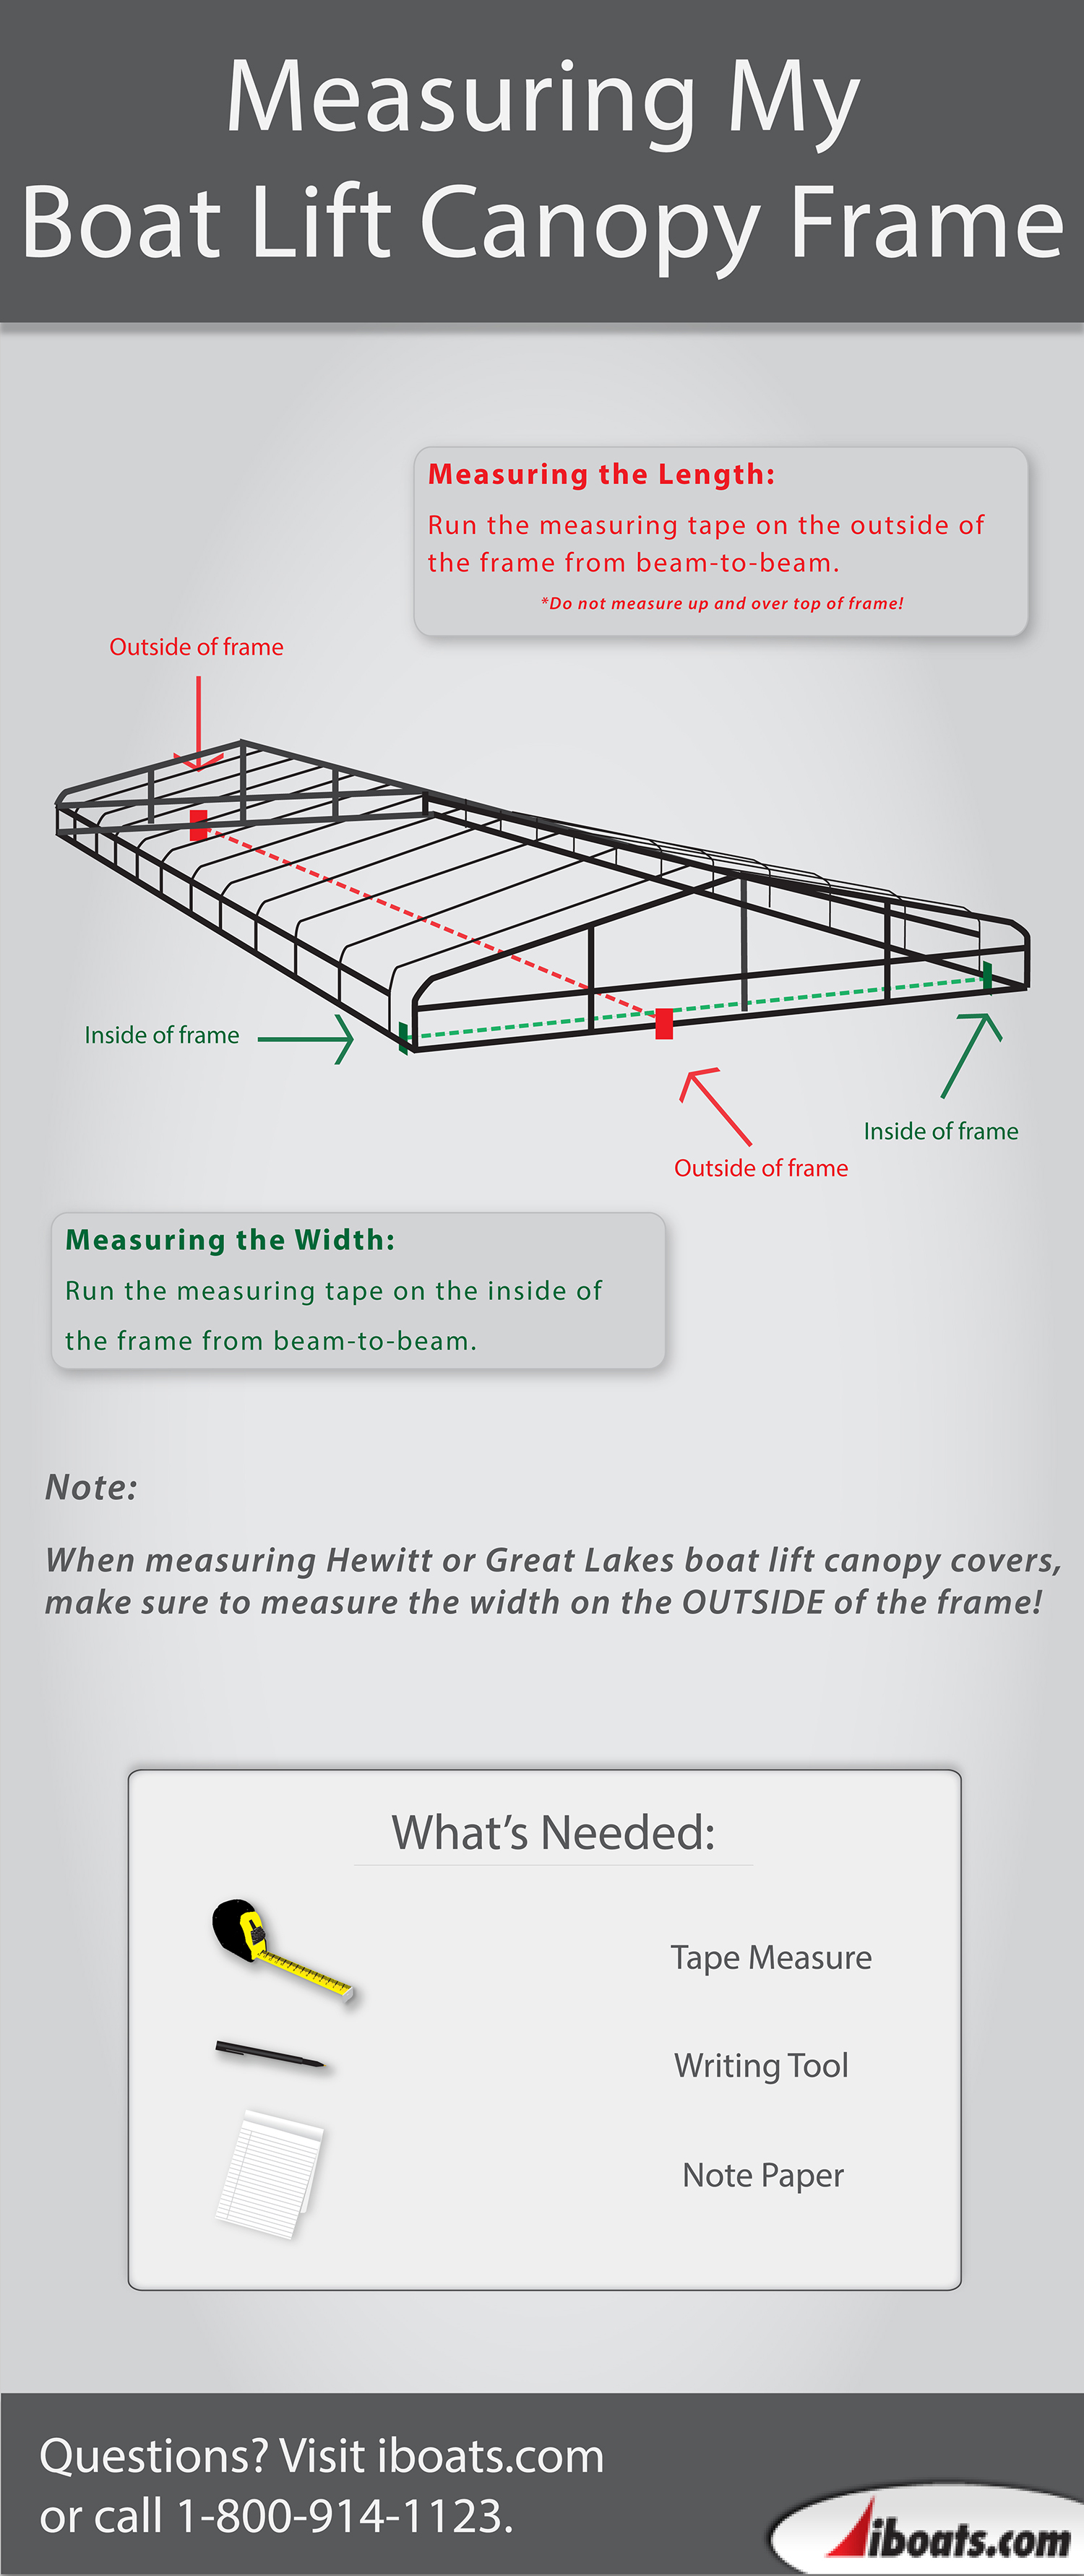 Infographic on how to measure a boat lift canopy frame